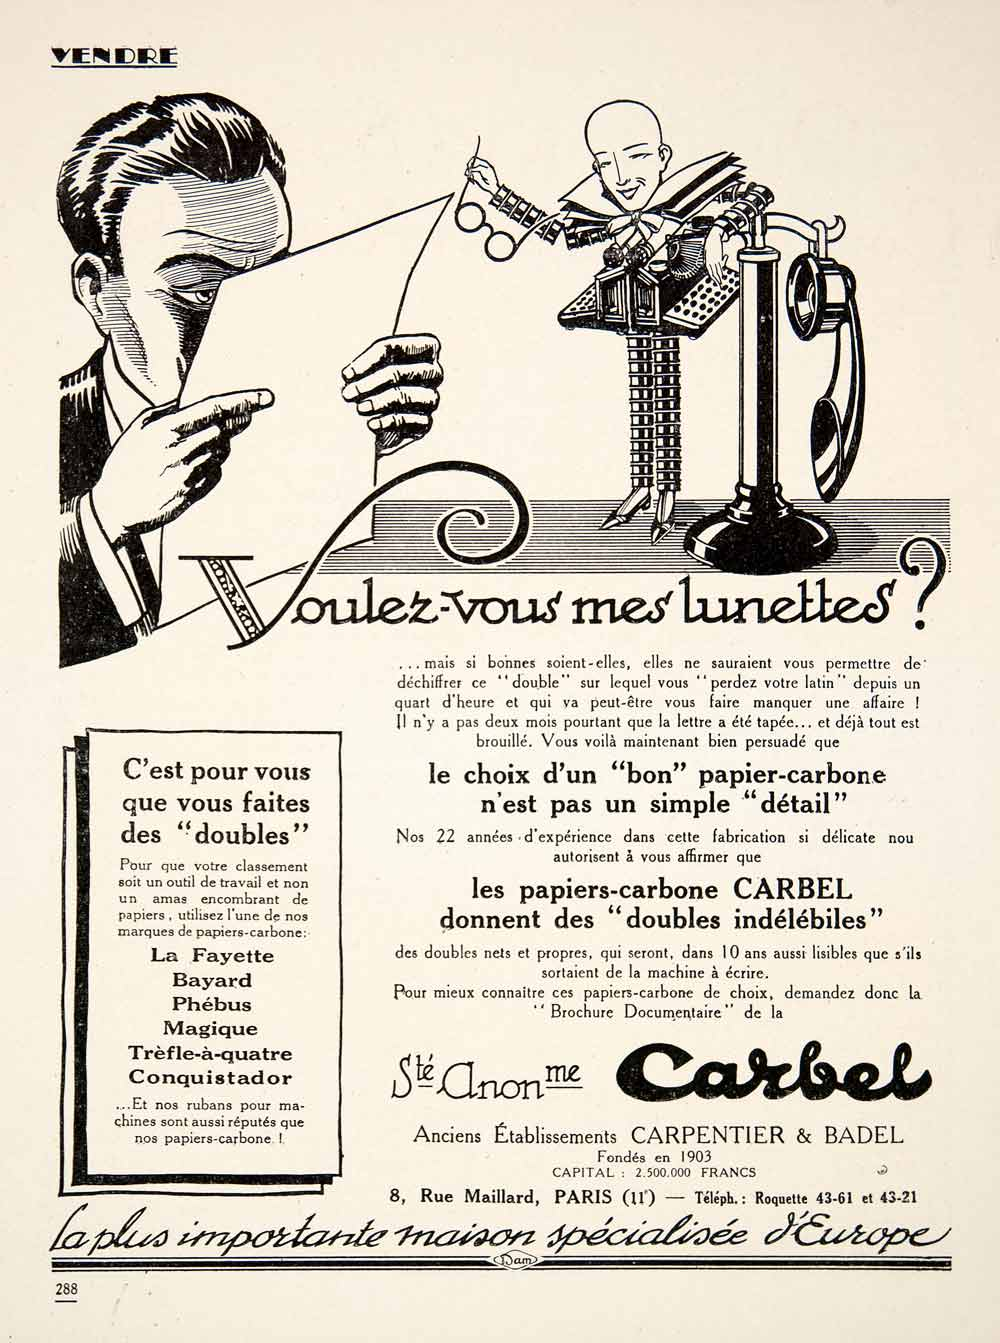 1925 Ad Carbel Carpentier Badel Glasses Telephone French Carbon Paper VEN3